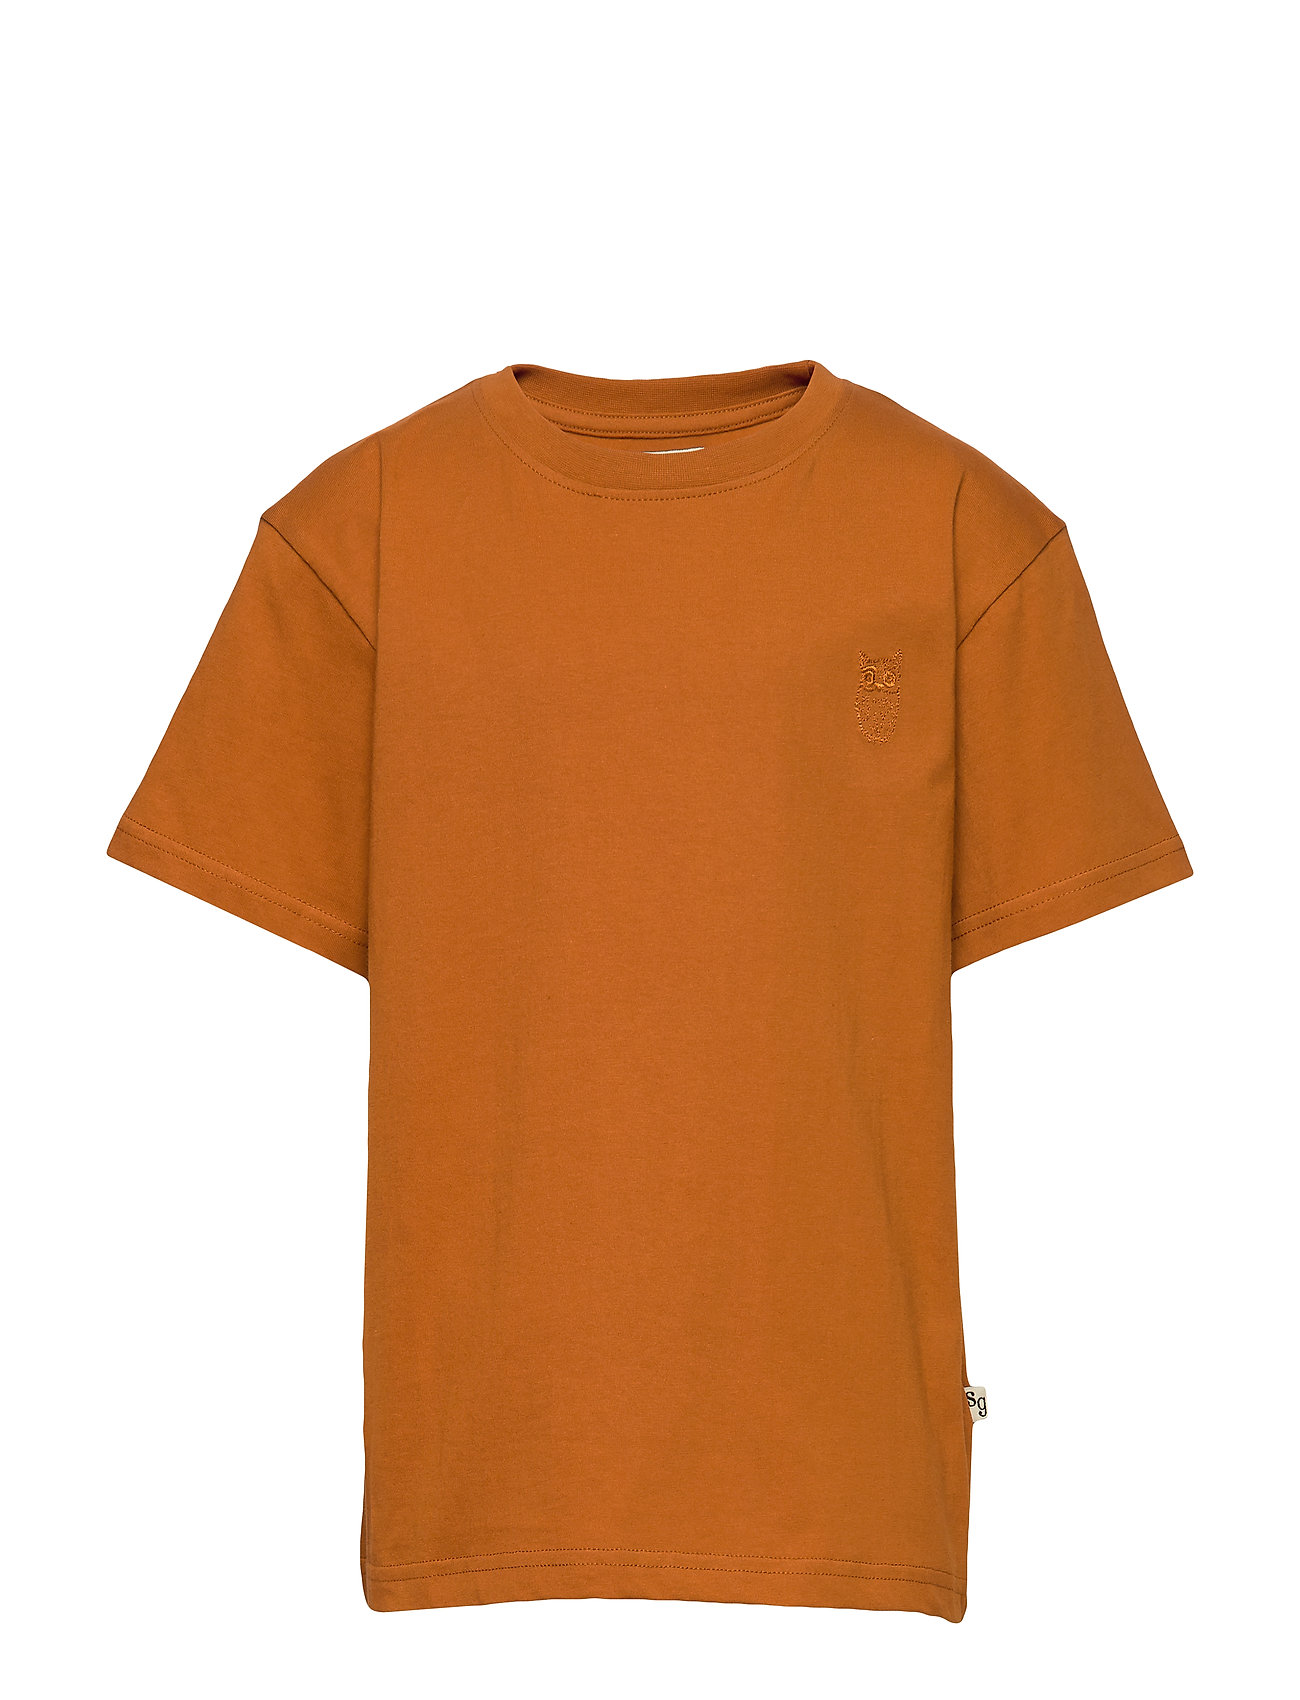 Soft Gallery Asger T-Shirt T-shirts Short-sleeved Orange Soft Gallery